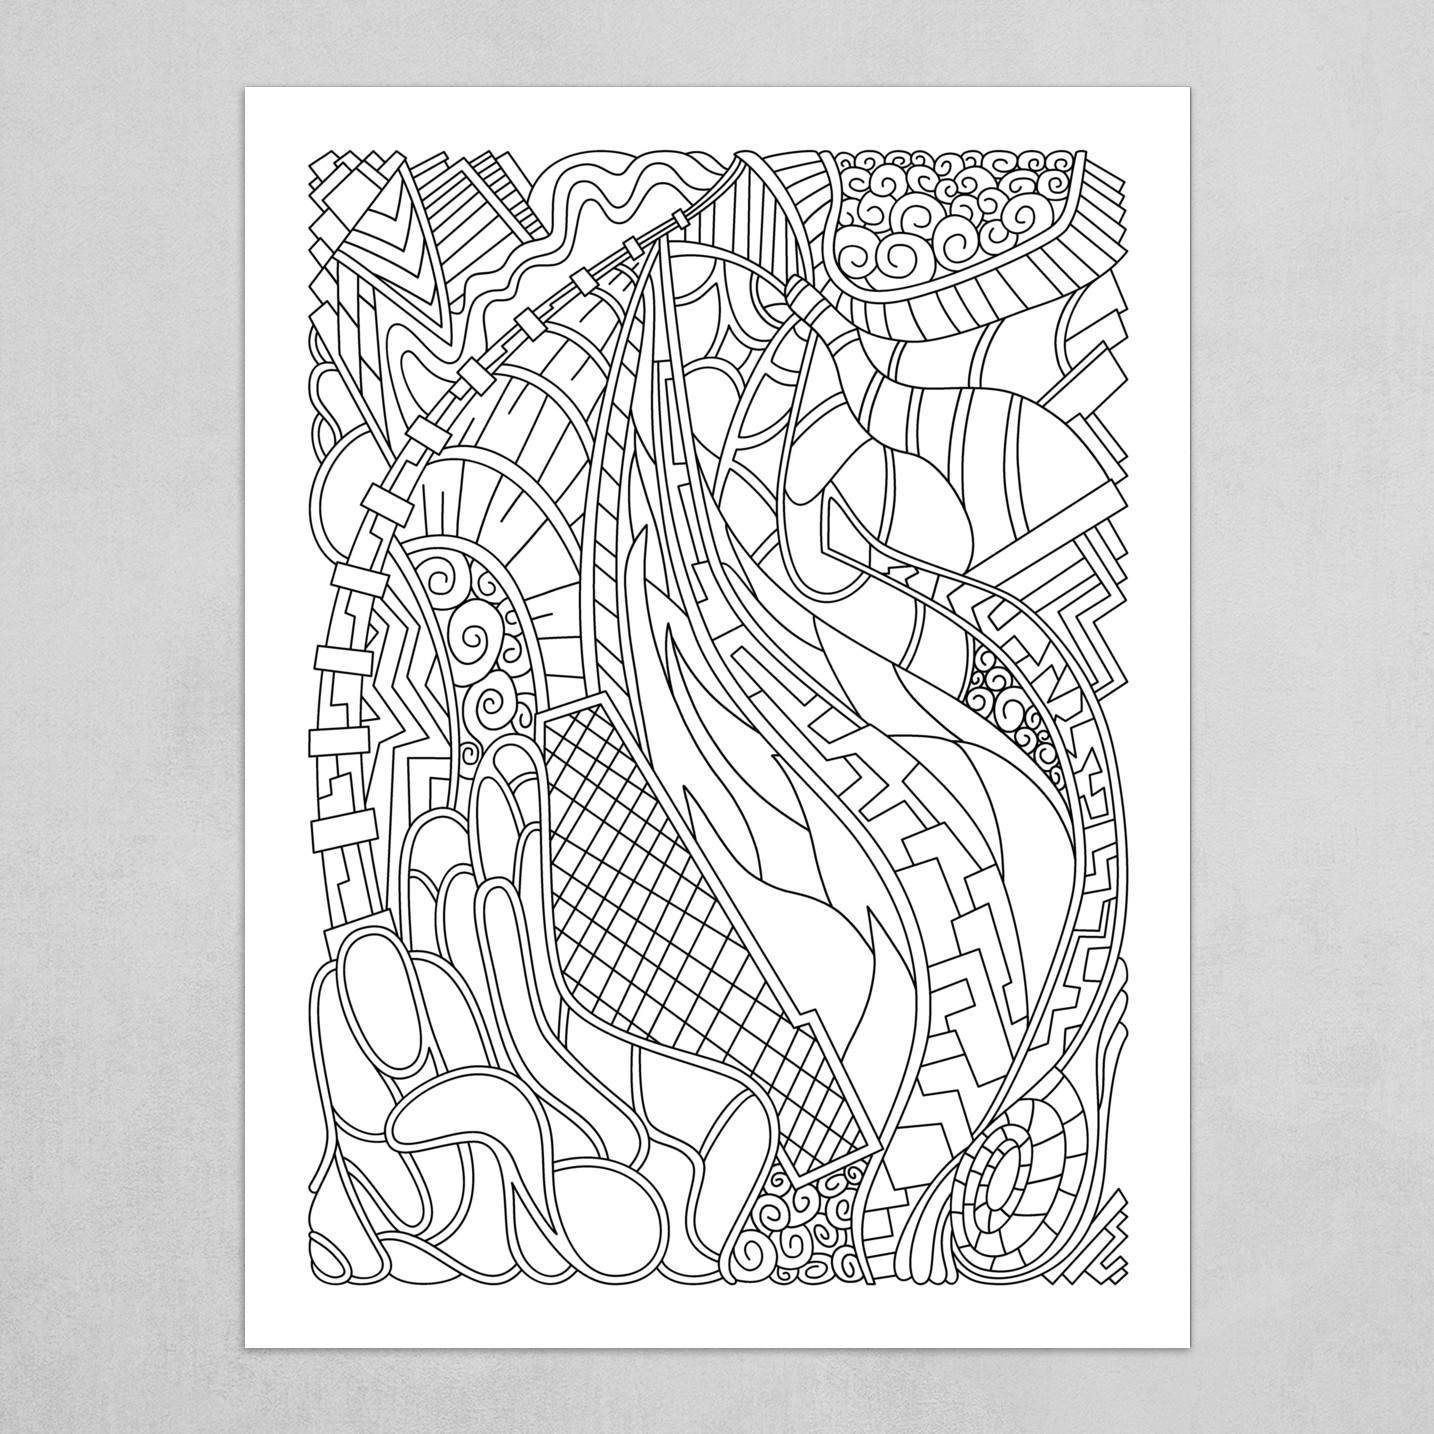 Wandering Abstract Line Art 31: Black & White